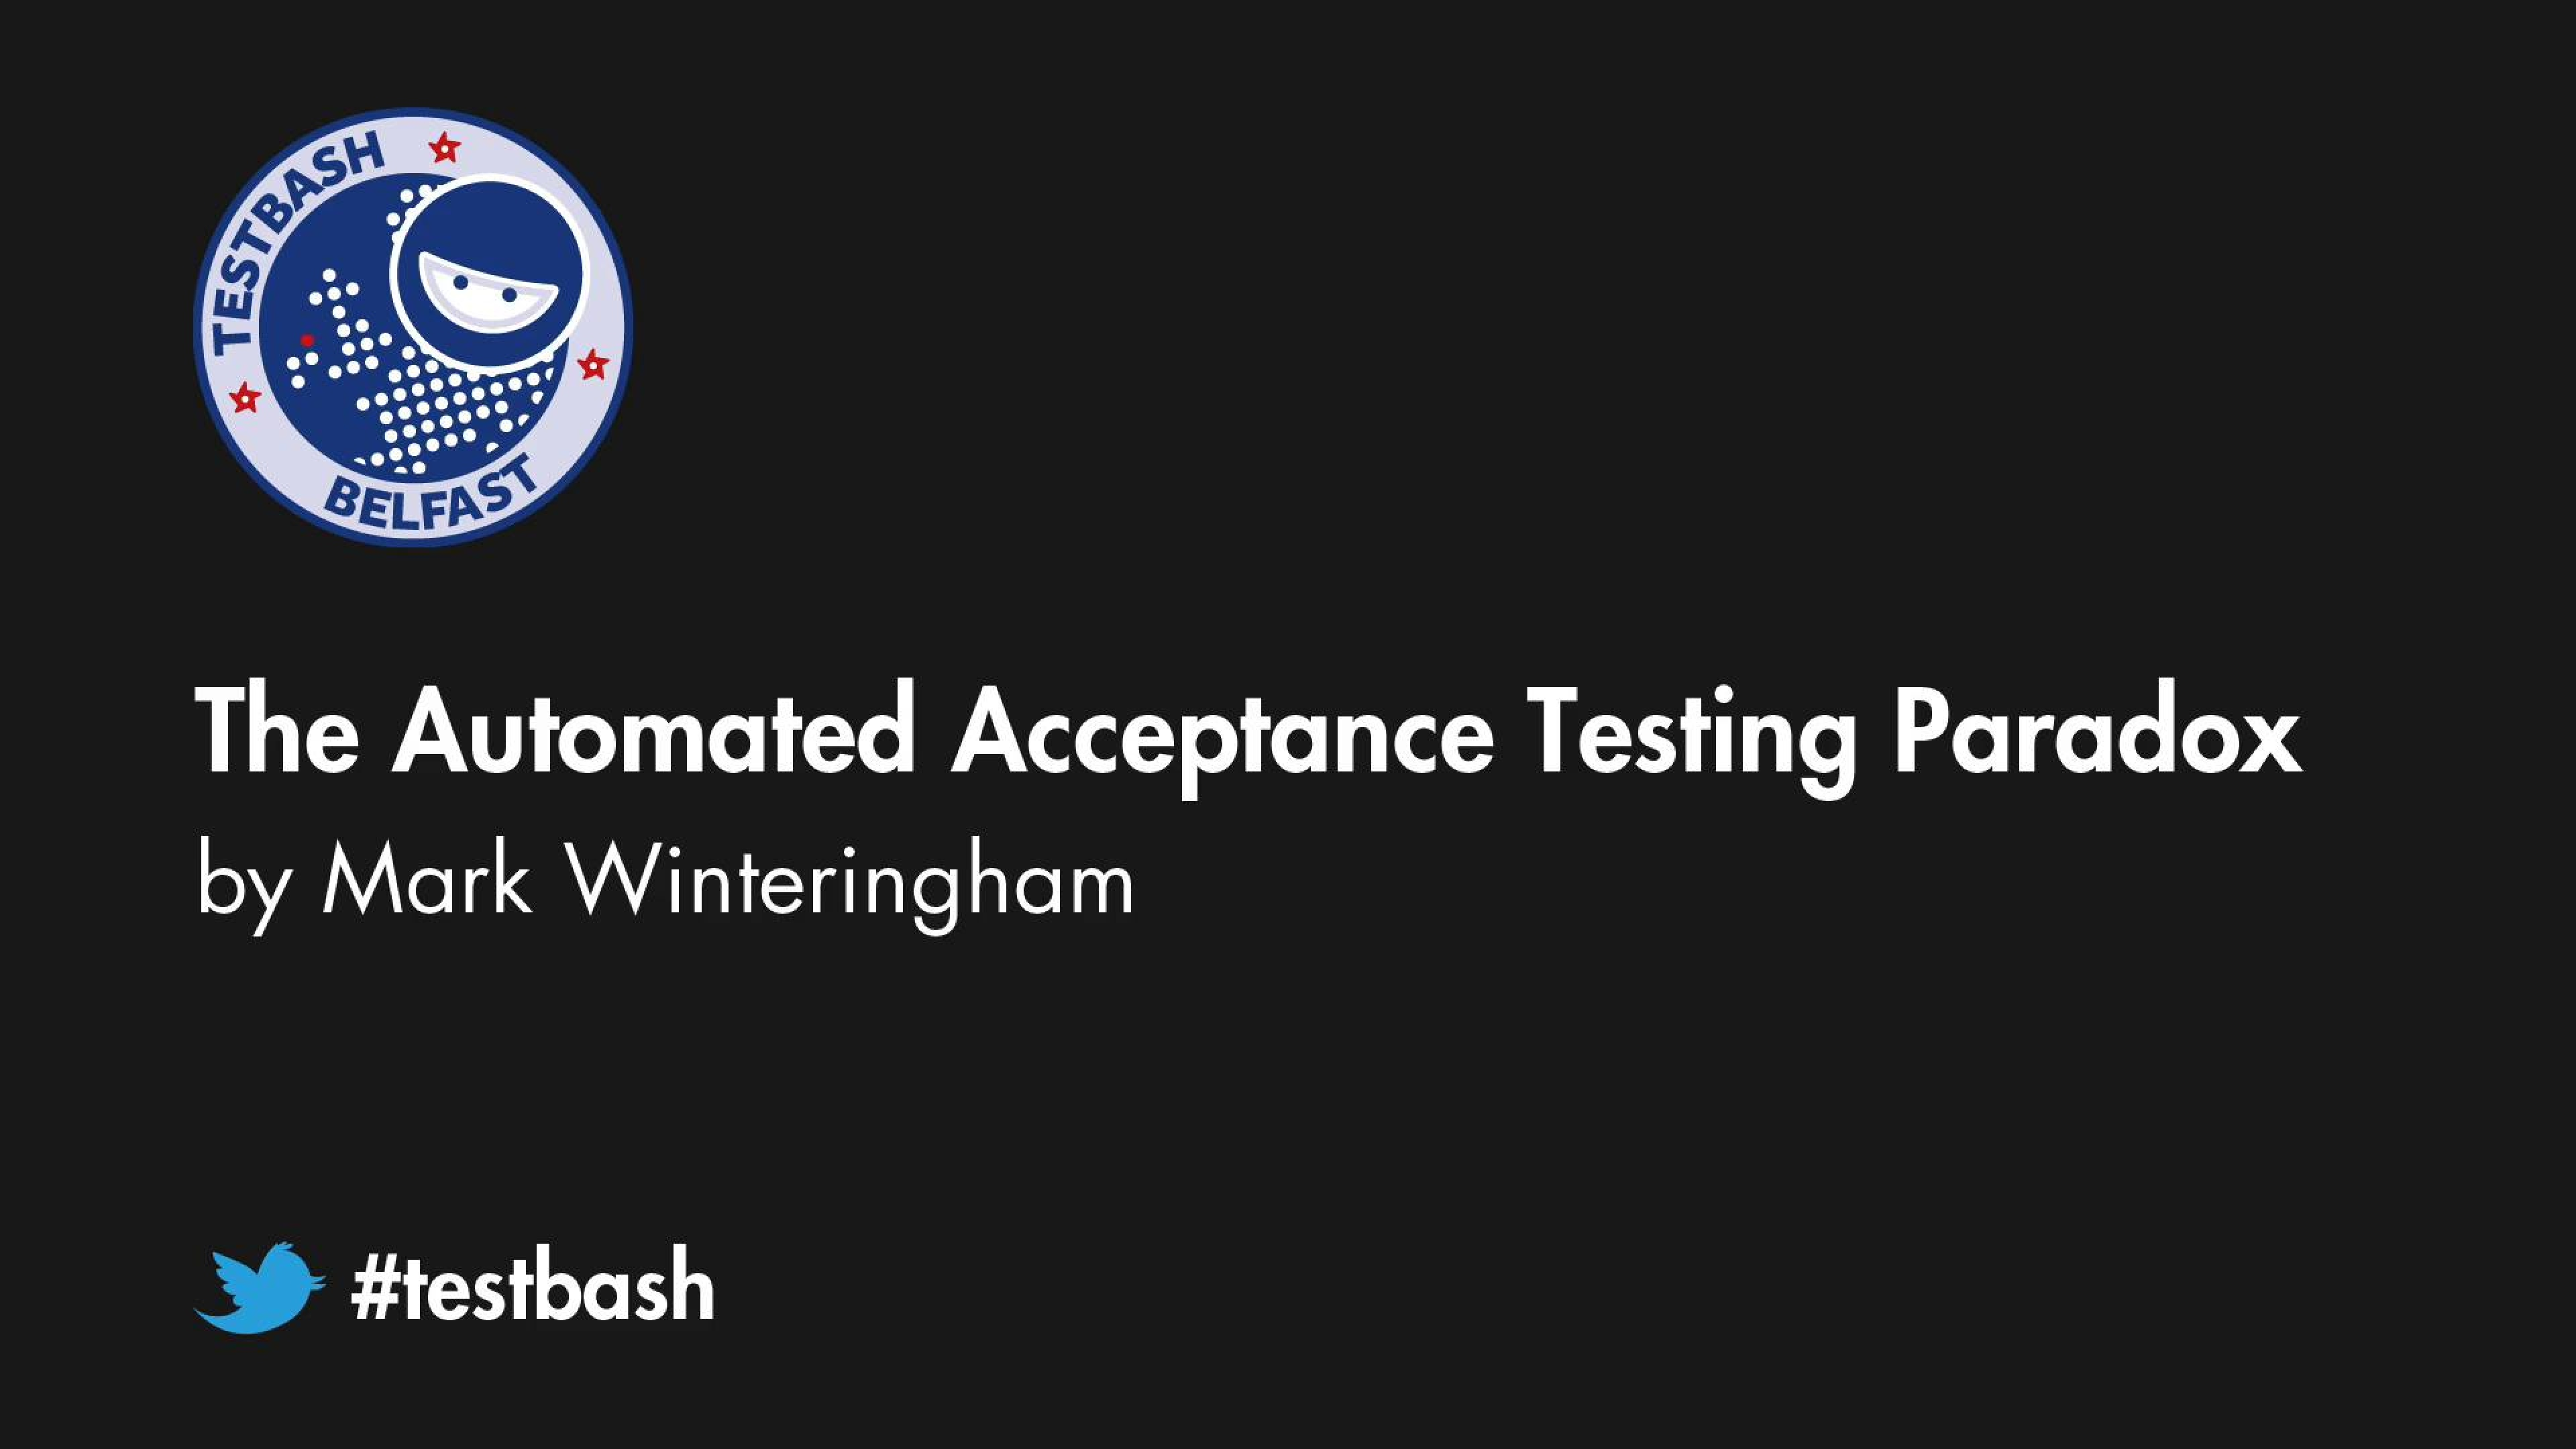 The Automated Acceptance Testing Paradox - Mark Winteringham